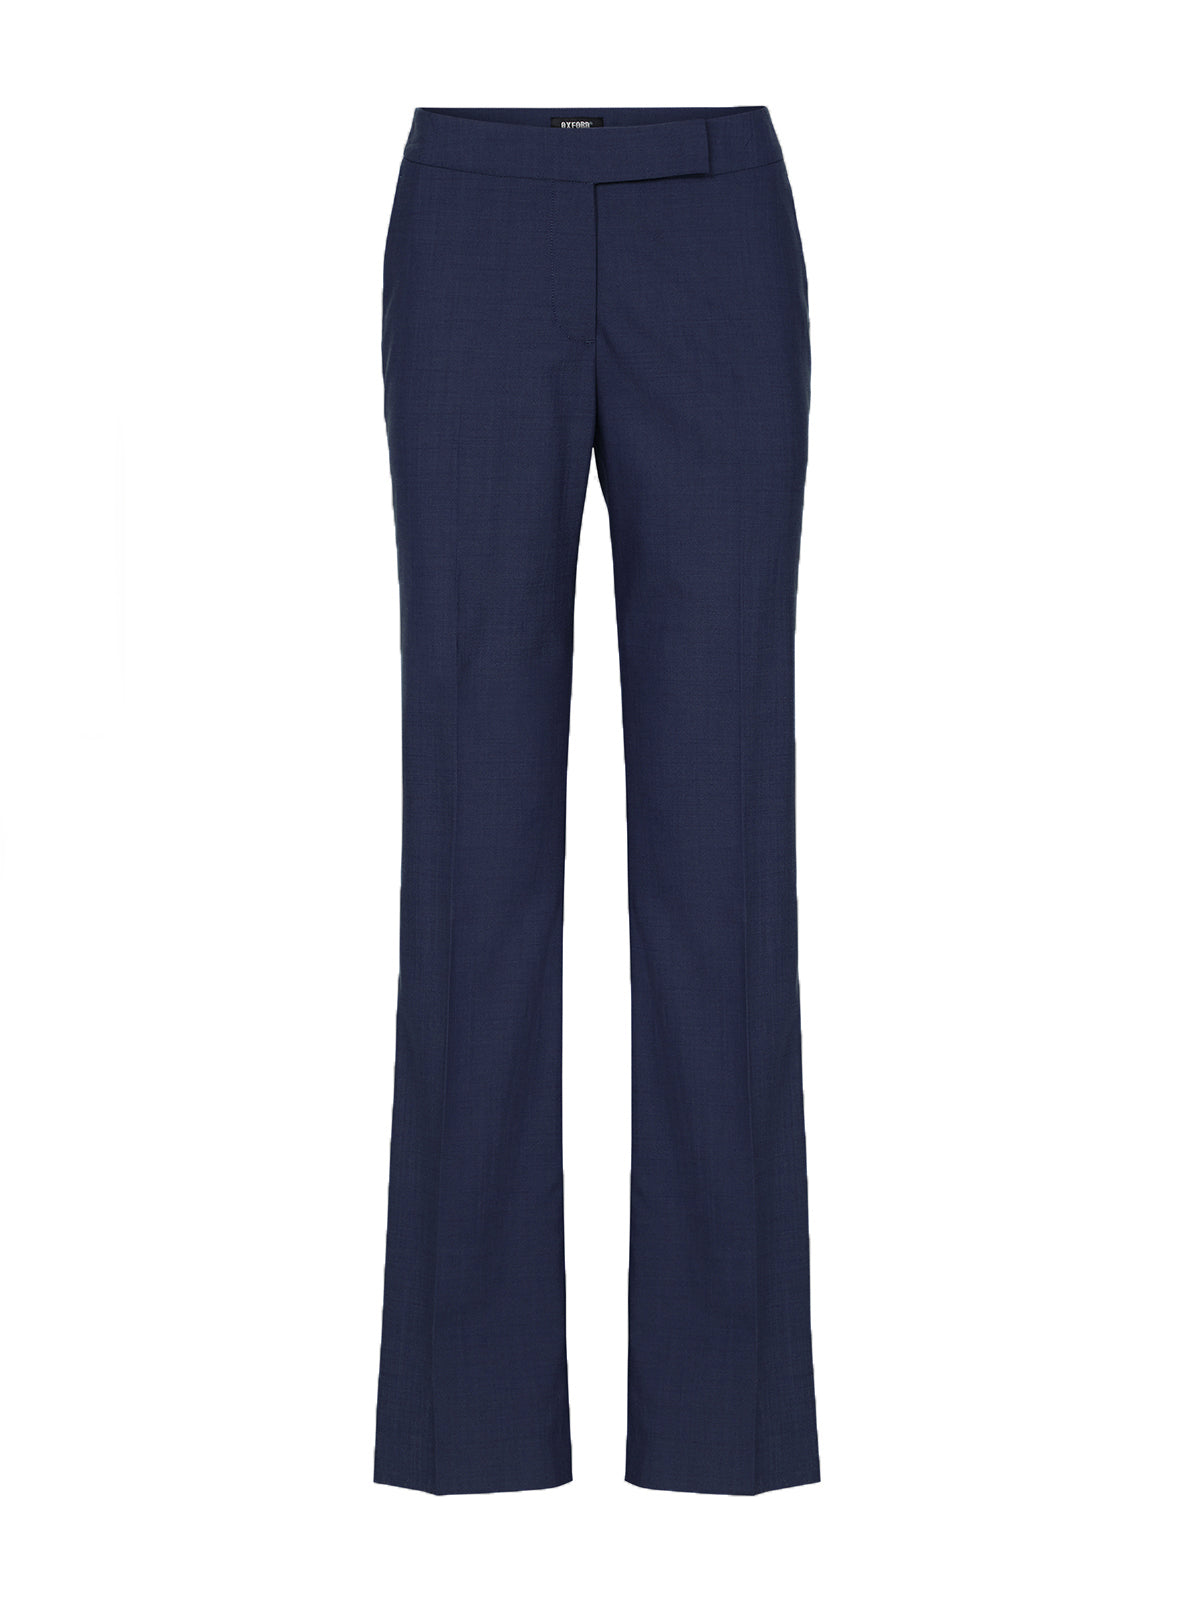 DANICA STRETCH SUIT TROUSERS BLK